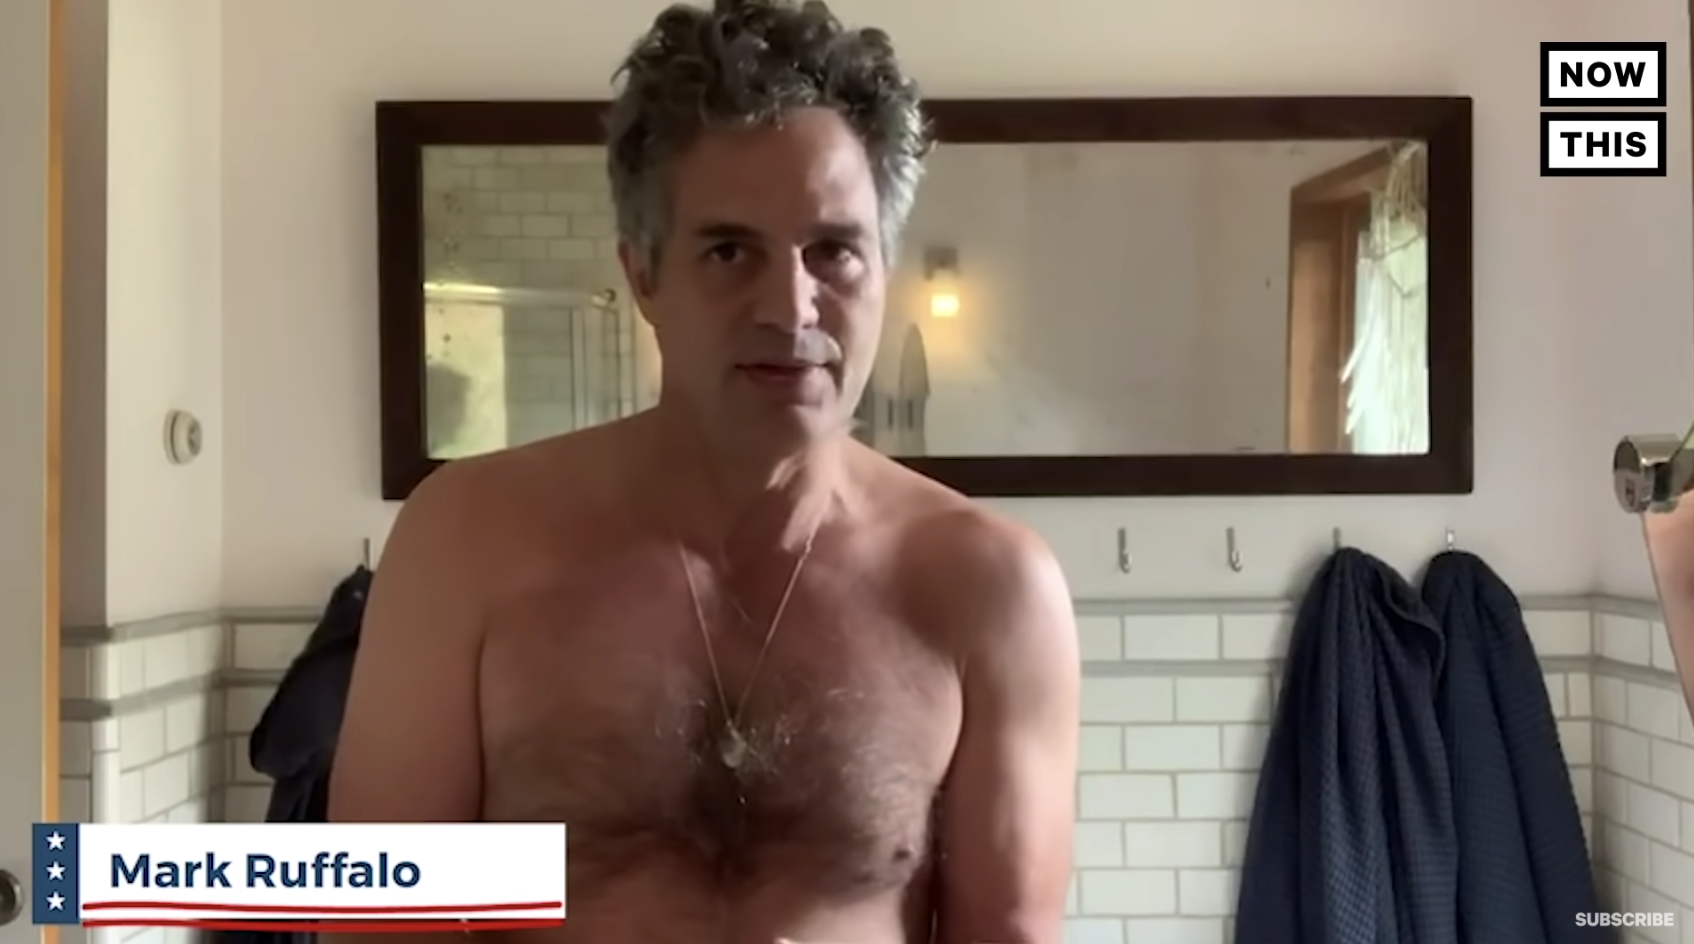 Mark Ruffalo shirtless telling us to send in ballots early